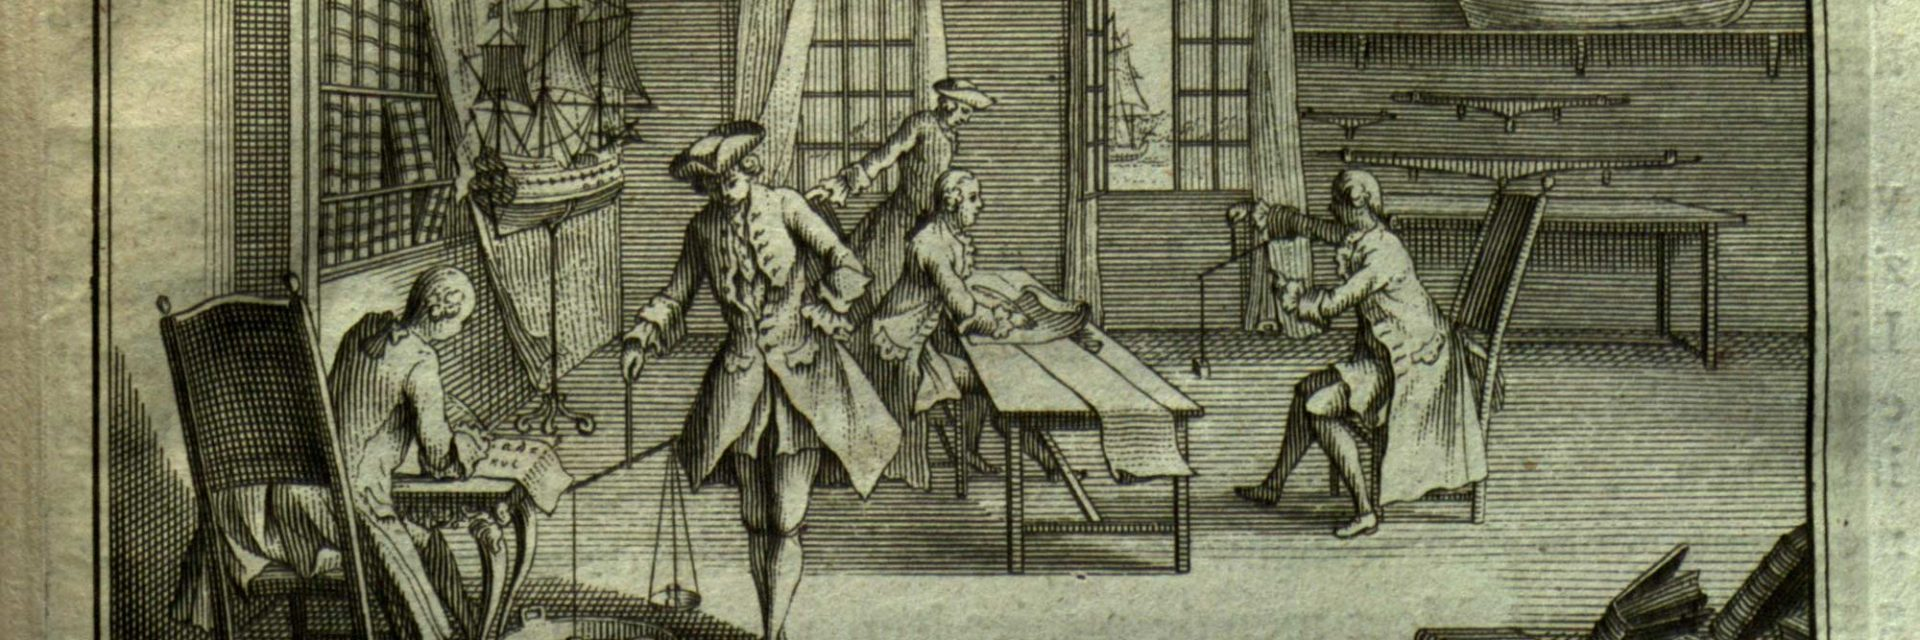 Etching depicting men working in a ship building workshop - from Providence Public Library Special Collections